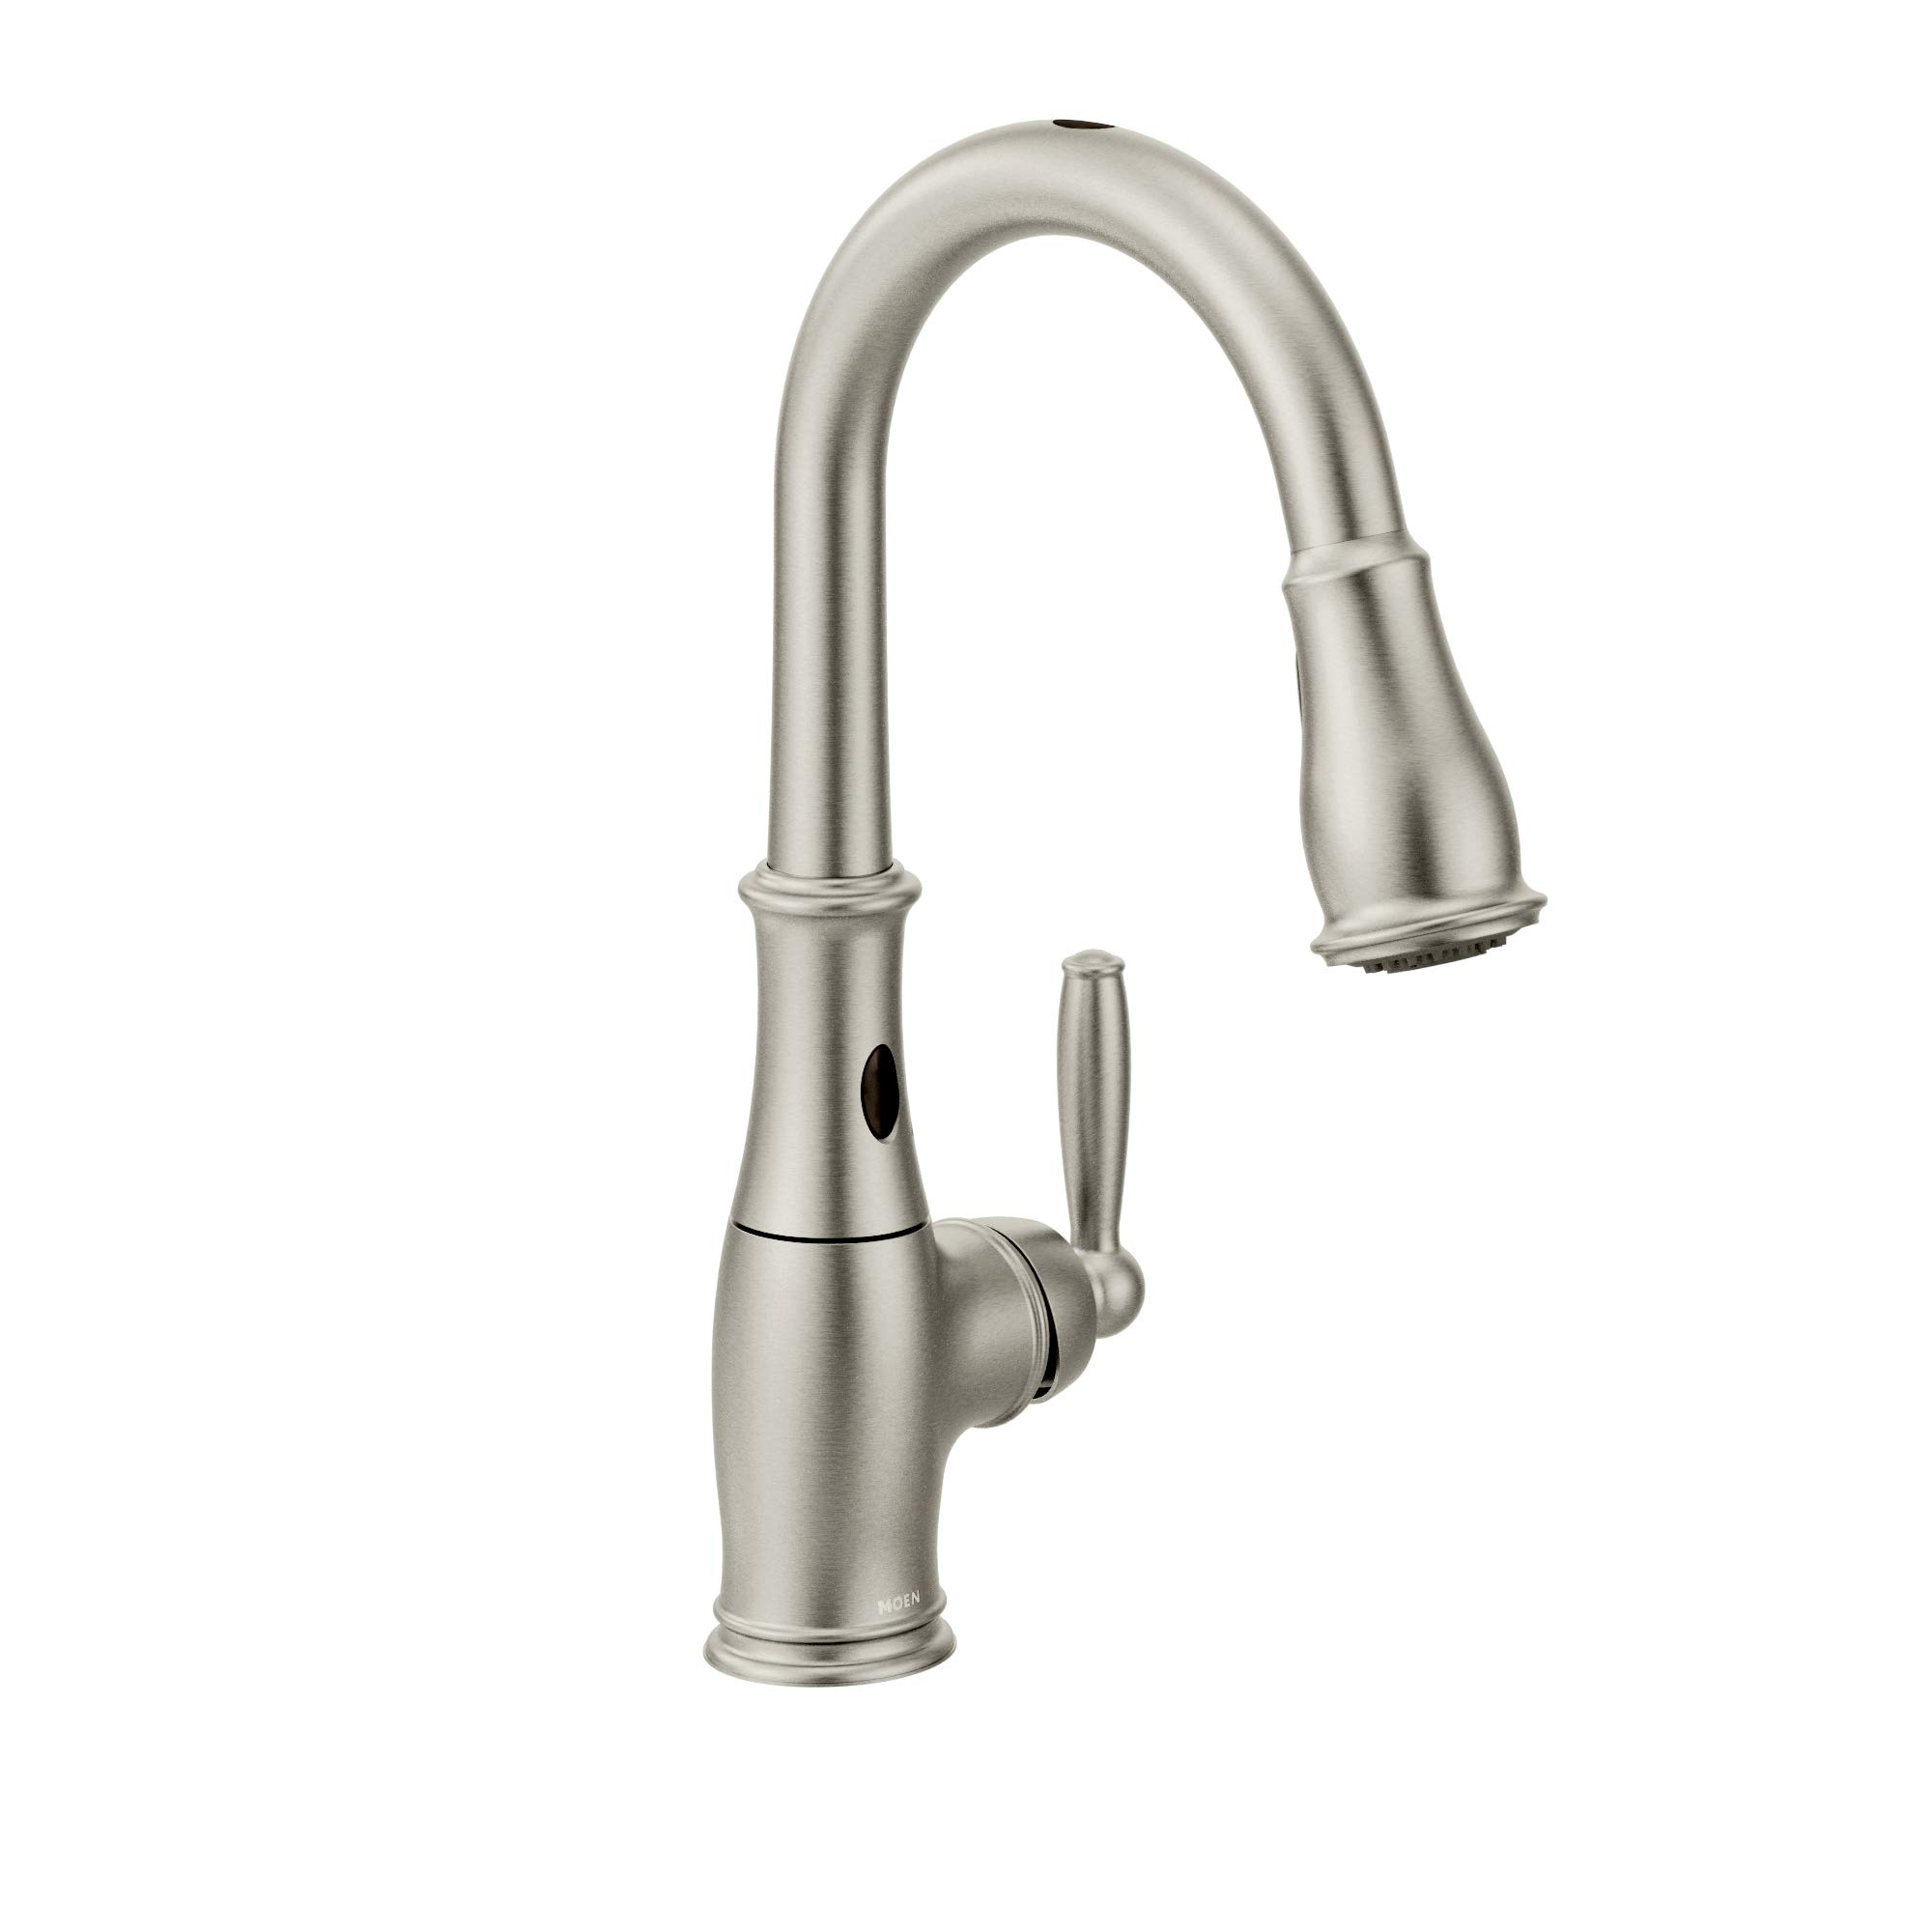 Moen 7185ESRS Brantford Motionsense Two-Sensor Touchless One-Handle High Arc Pulldown Kitchen Faucet Featuring Reflex, Spot Resist Stainless by Moen (Image #1)